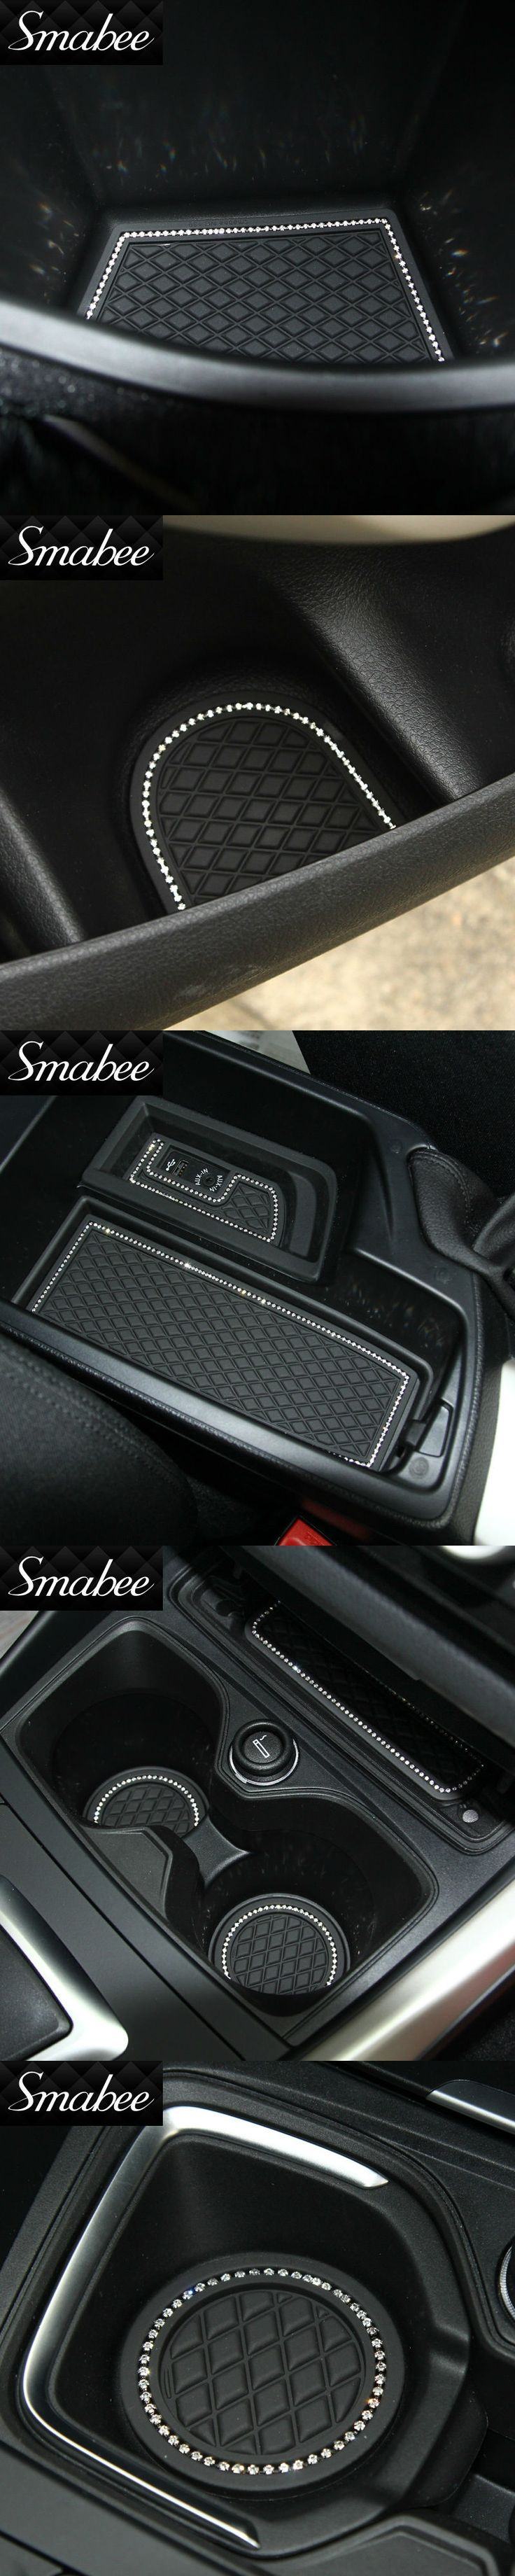 Smabee Door Groove Mat For 2012-2016 BMW 1 BMW118i 120i 125iM M135i Gate slot pad Automotive interior Anti-Slip Mat